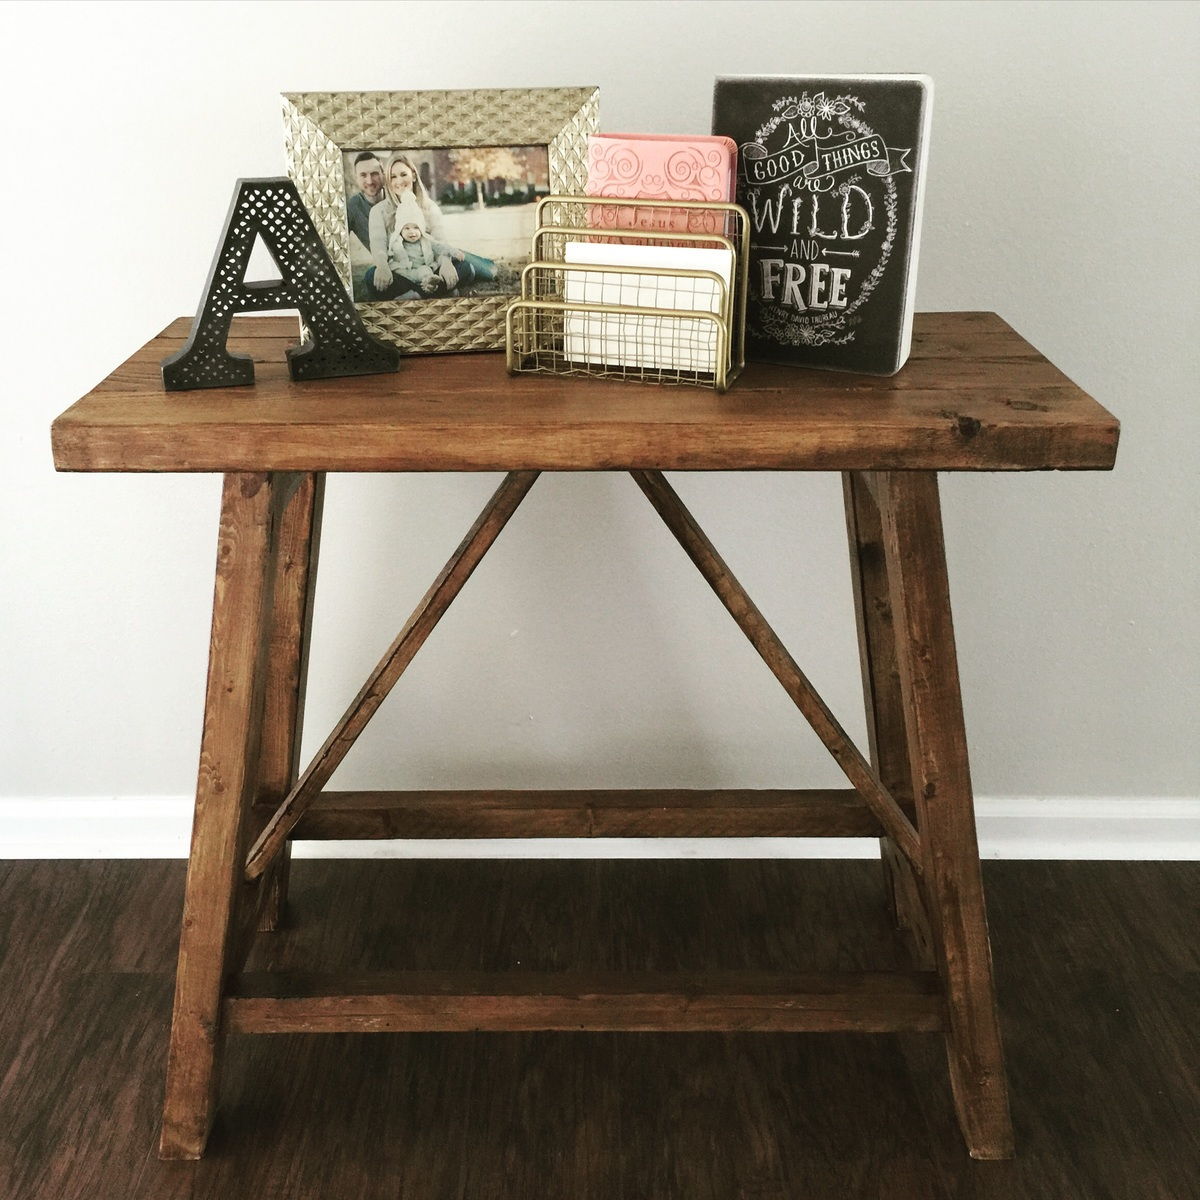 pottery barn end tables Ana White | Pottery Barn Inspired Truss End Tables   DIY Projects pottery barn end tables